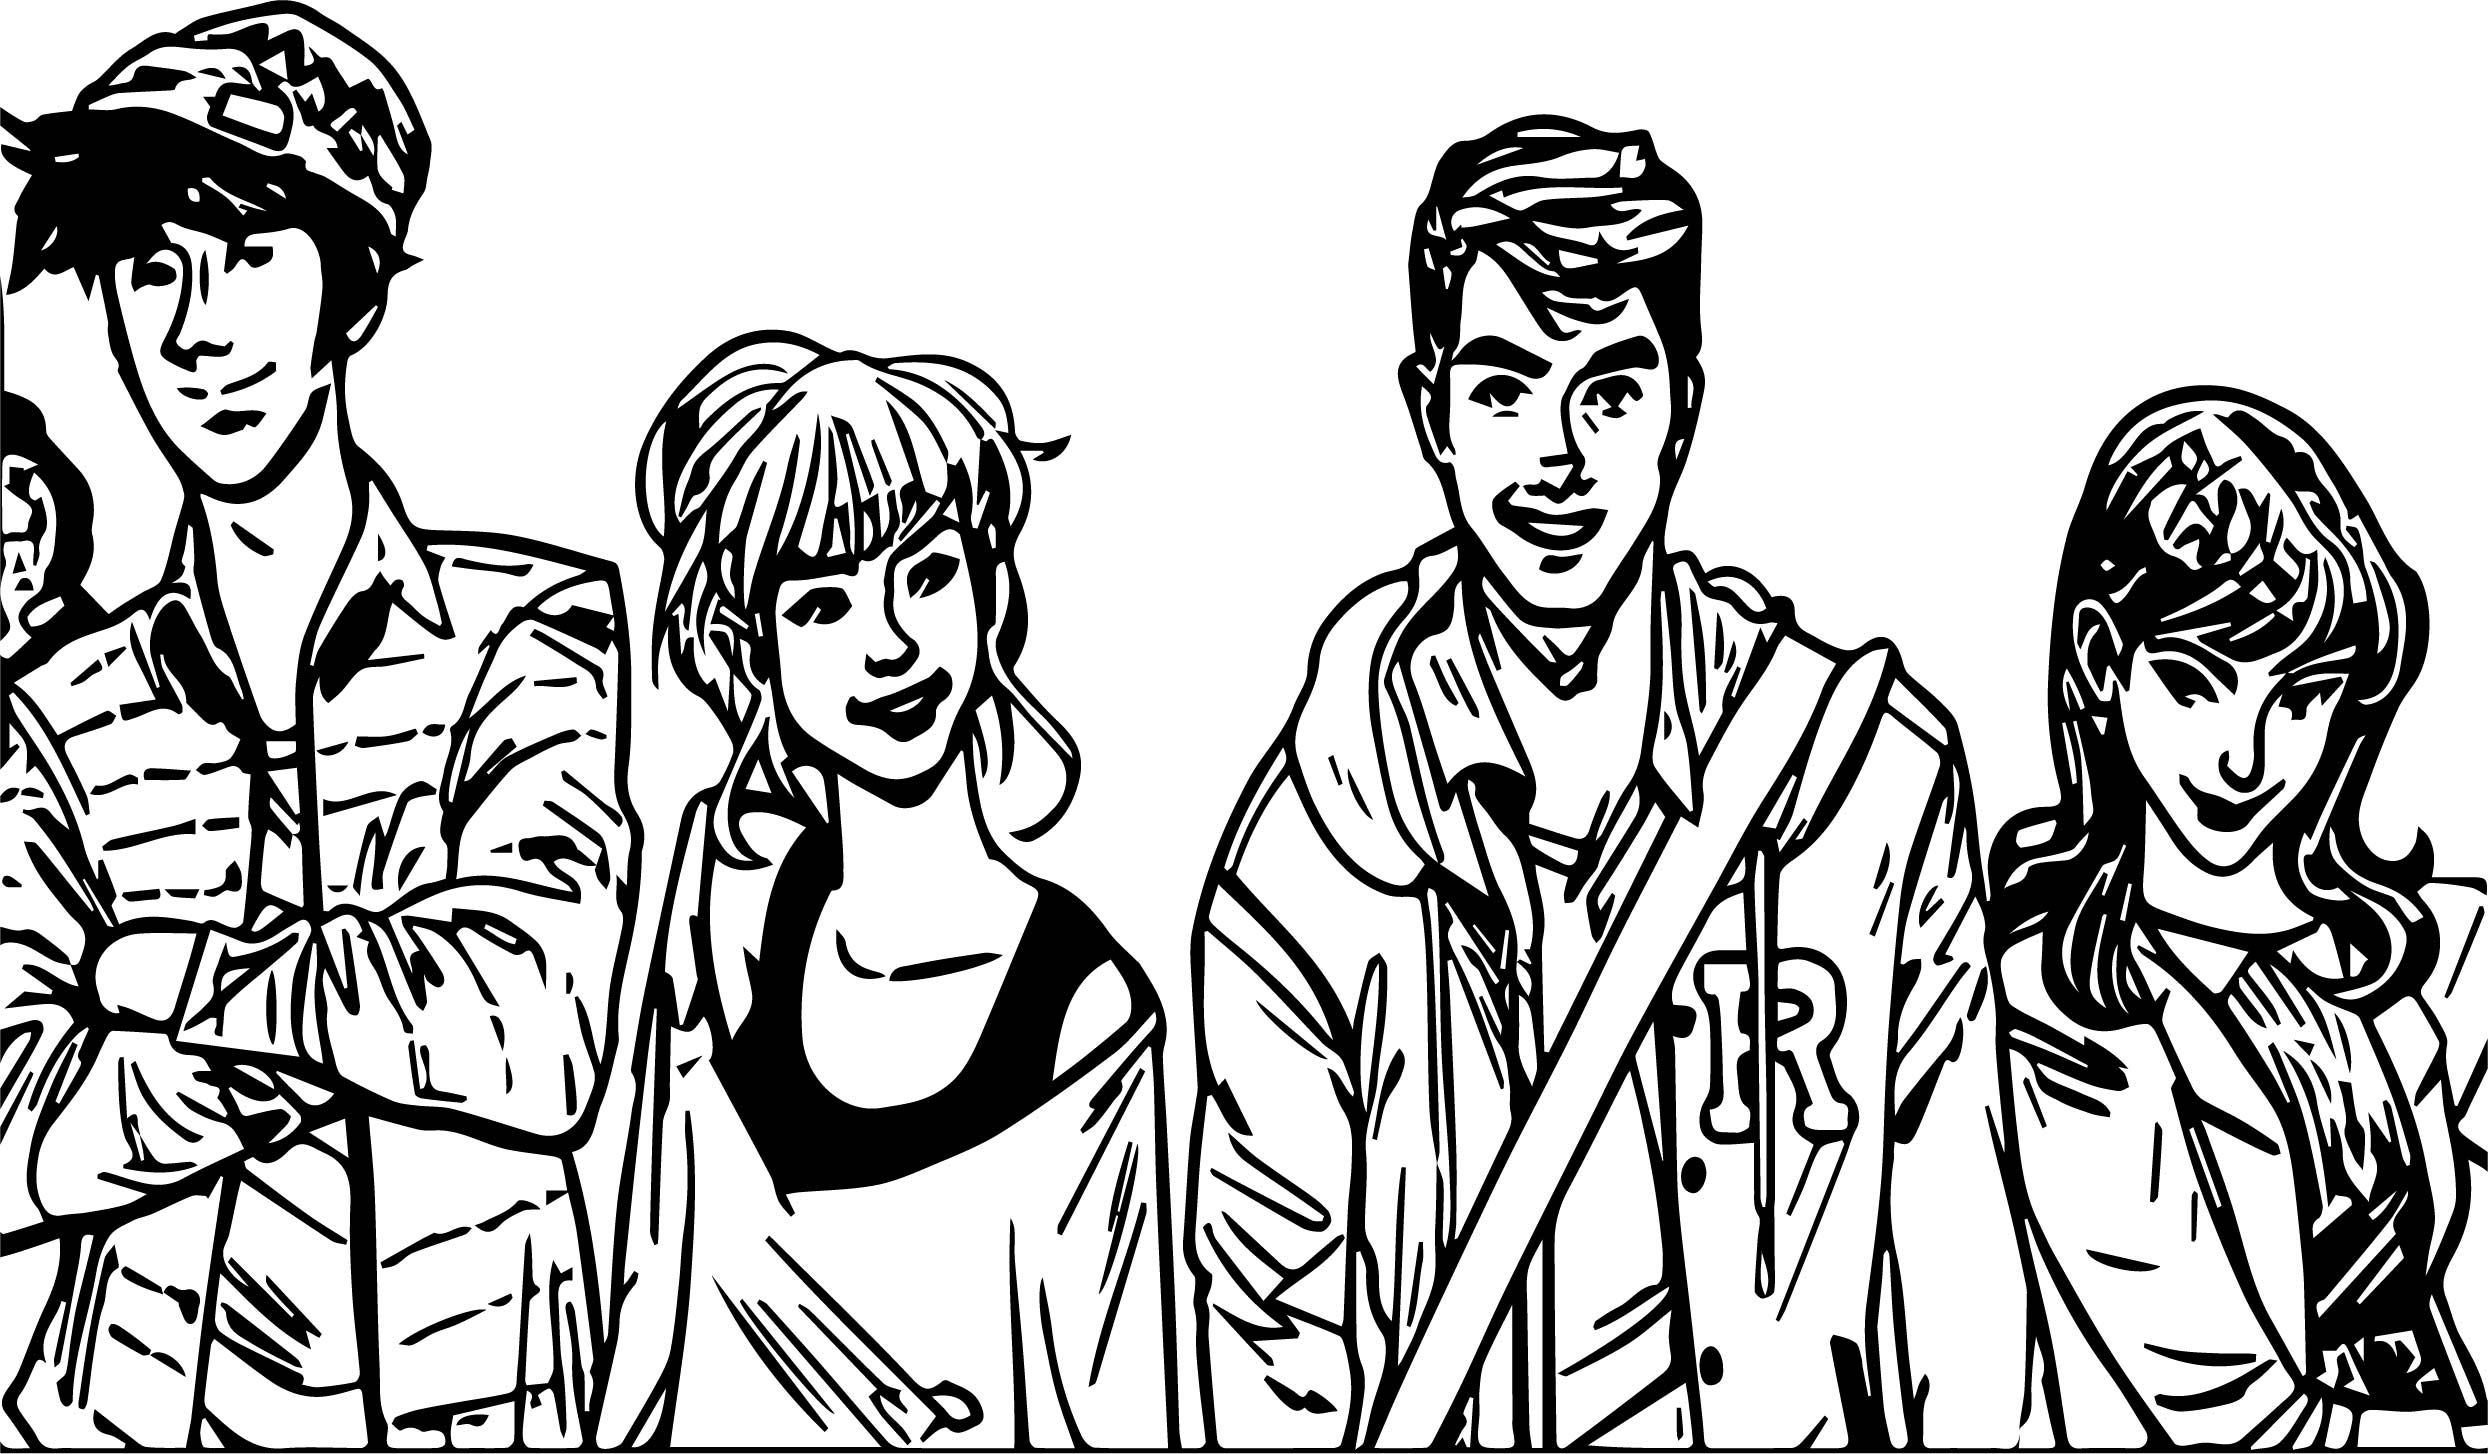 riverdale coloring pages awesome Riverdale Cast Making Big Changes To Archie Comic  riverdale coloring pages